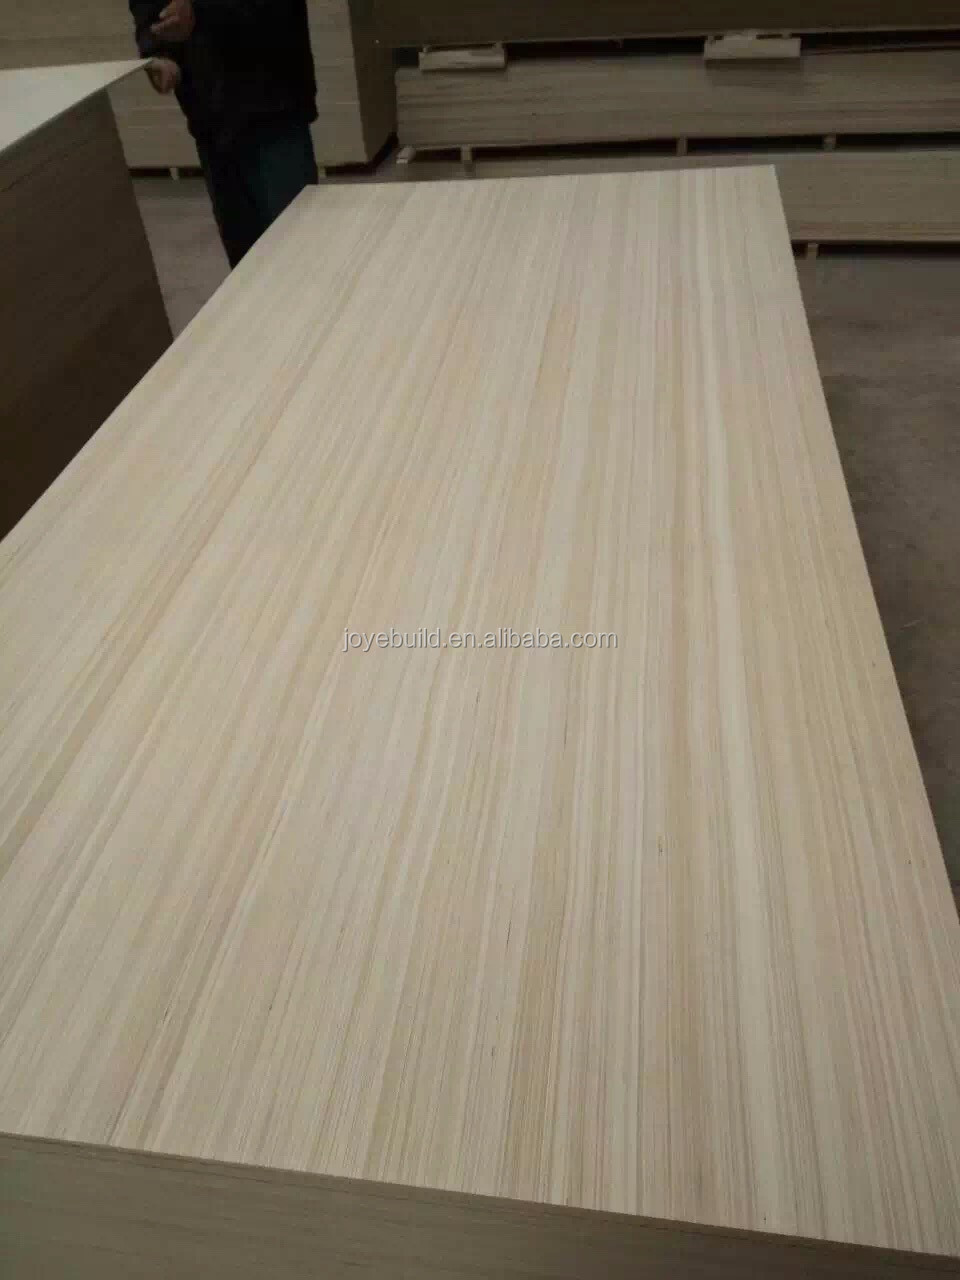 Plywood with face and back veneer from white color local wood